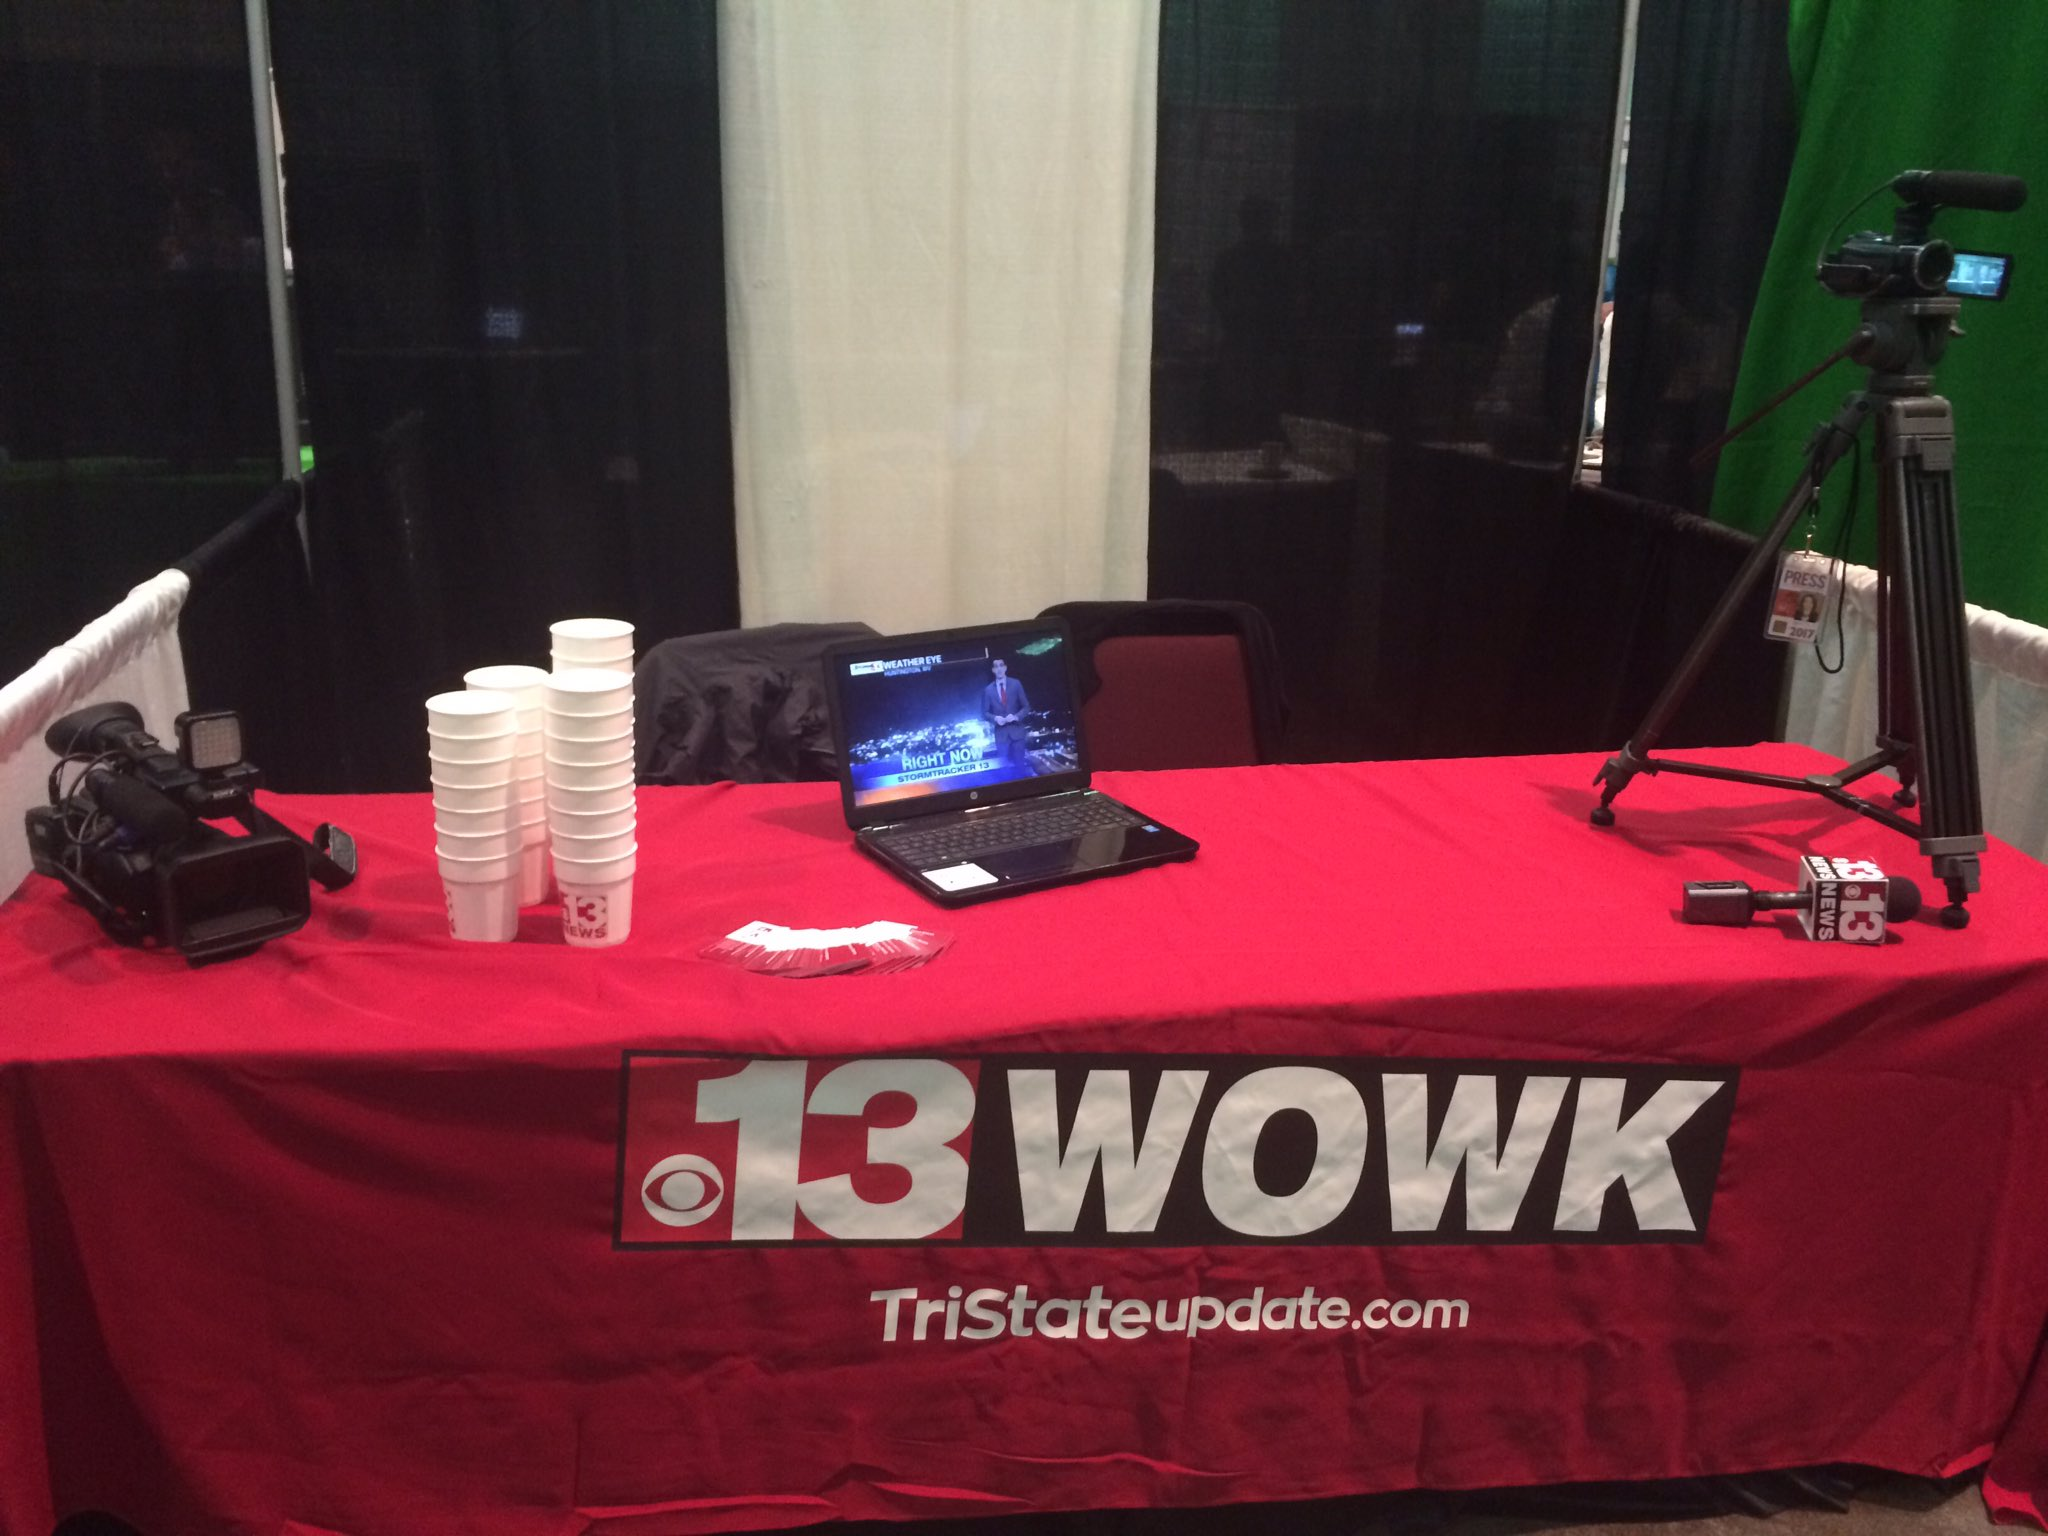 .@WOWK13News is at the @WVGEARUP Career Fair! Come say hi 😊 https://t.co/pqOOeN7XpB